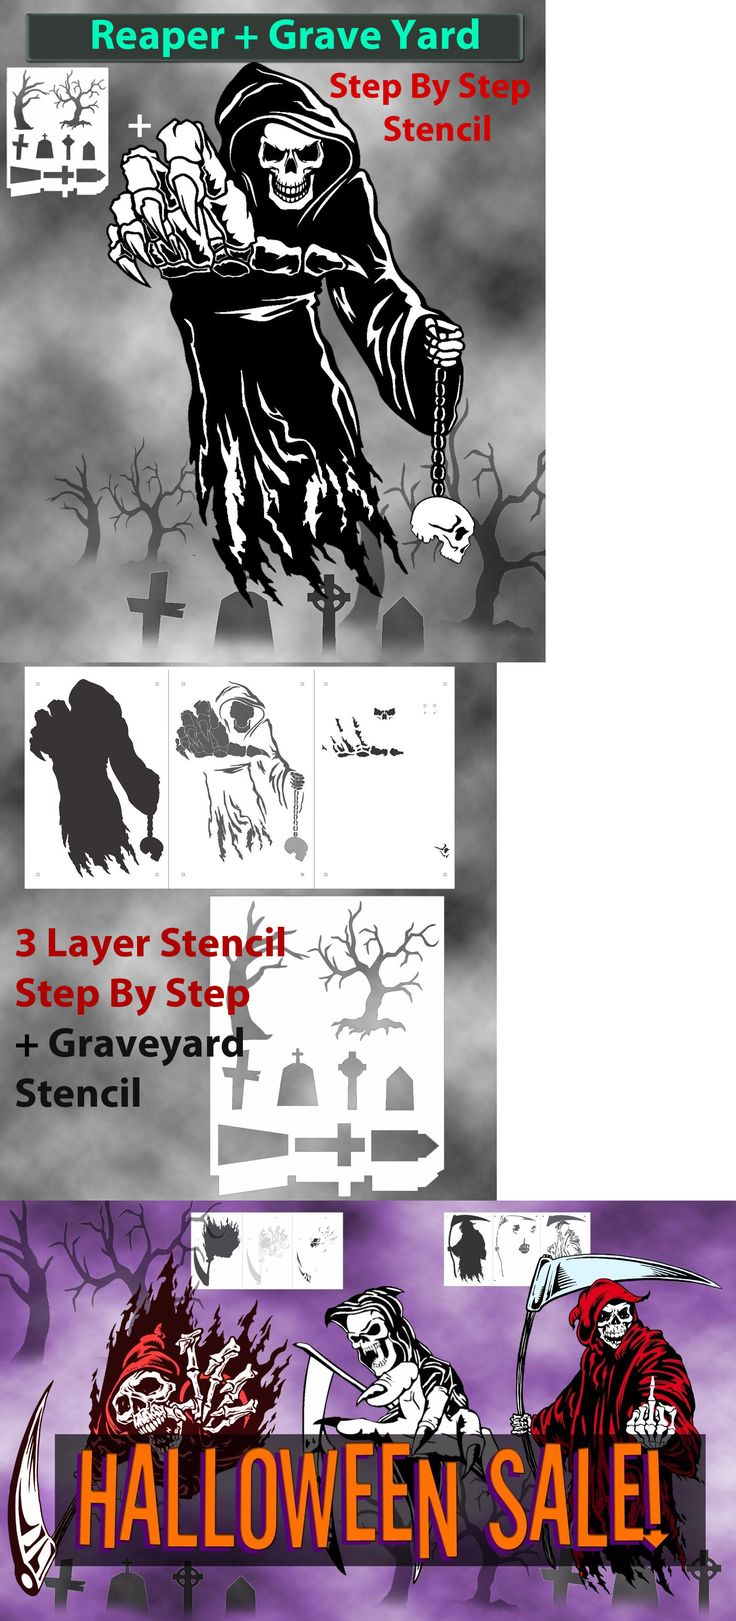 Best 829 Stencils and Templates 183185 images on Pinterest